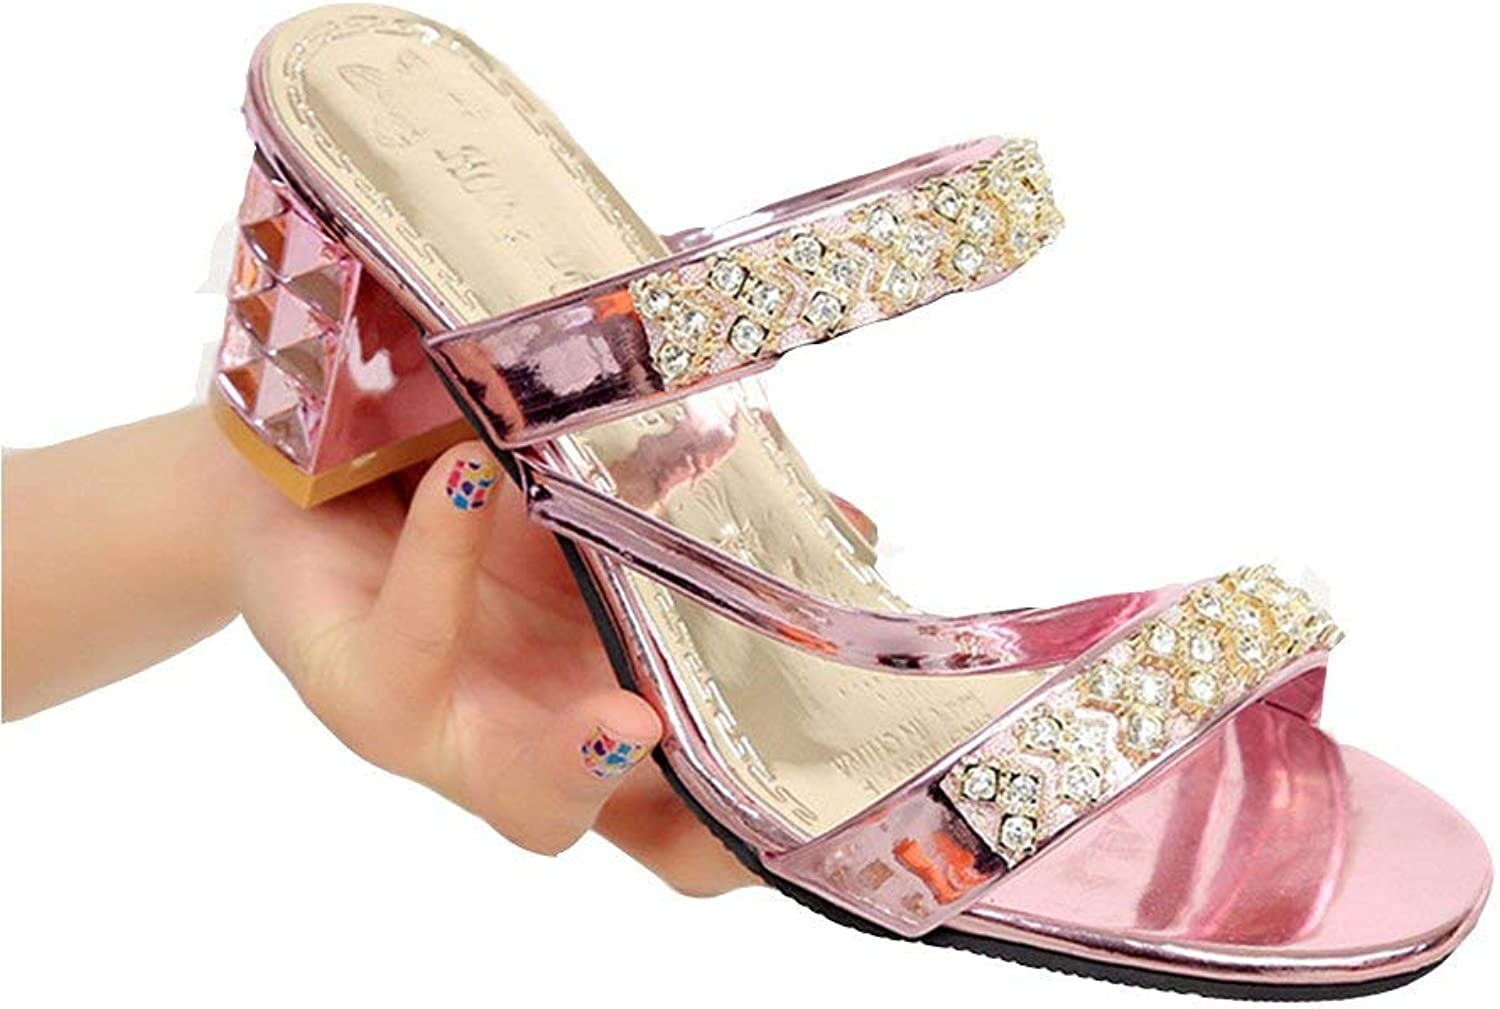 Ghapwe Womens Ladies Fashion Open Toe High Heels Sparkly Sandals Drill Slides for Wedding Party Evening shoes Girl Elegant Girl Rubber Sole Leg Length Leg Length golden 8 M US Sandals shoes